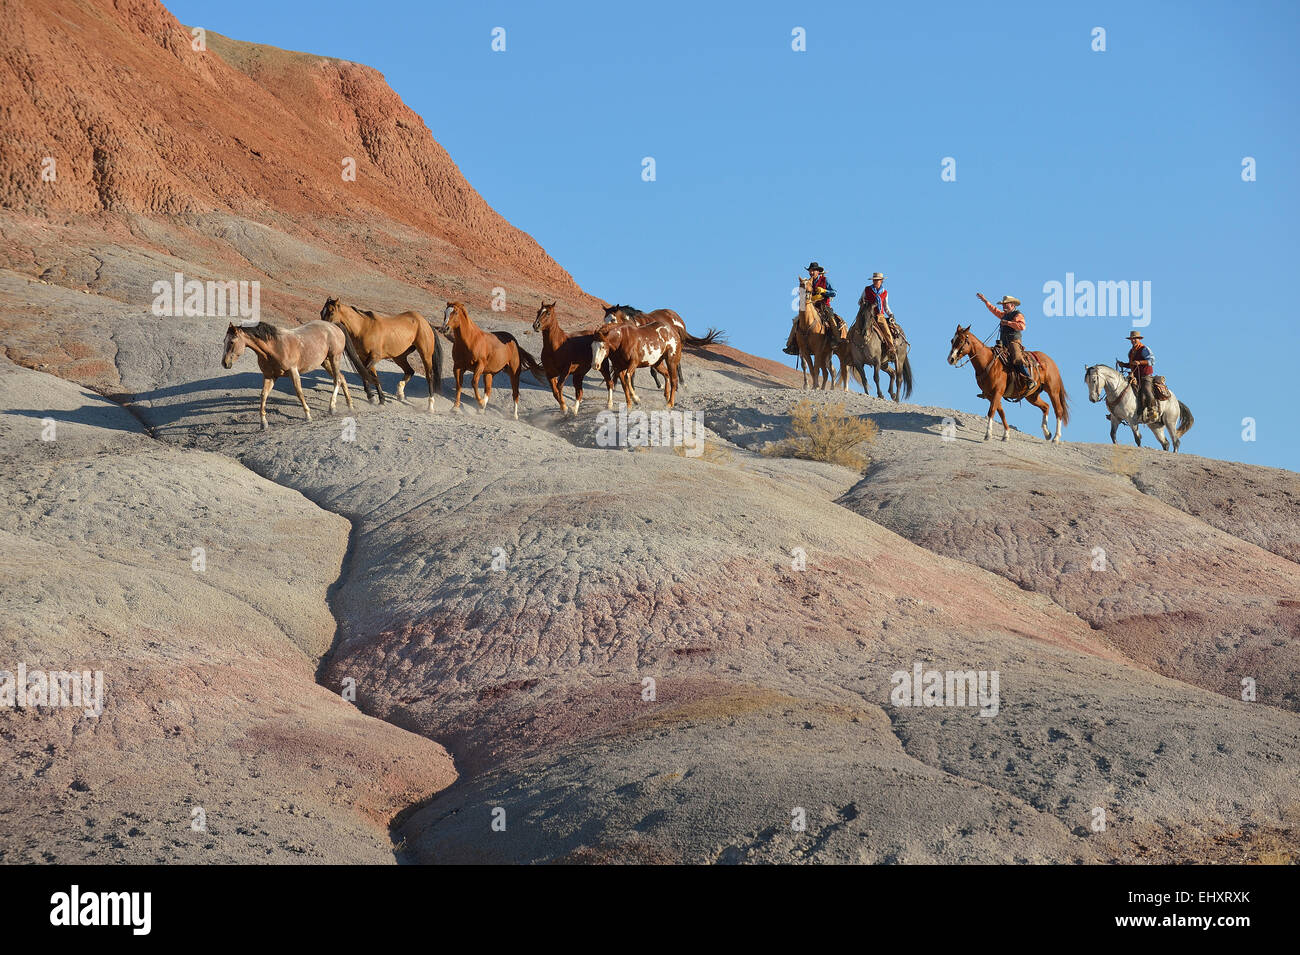 USA, Wyoming, cowboys et cowgirls des troupeaux de chevaux dans badlands Photo Stock